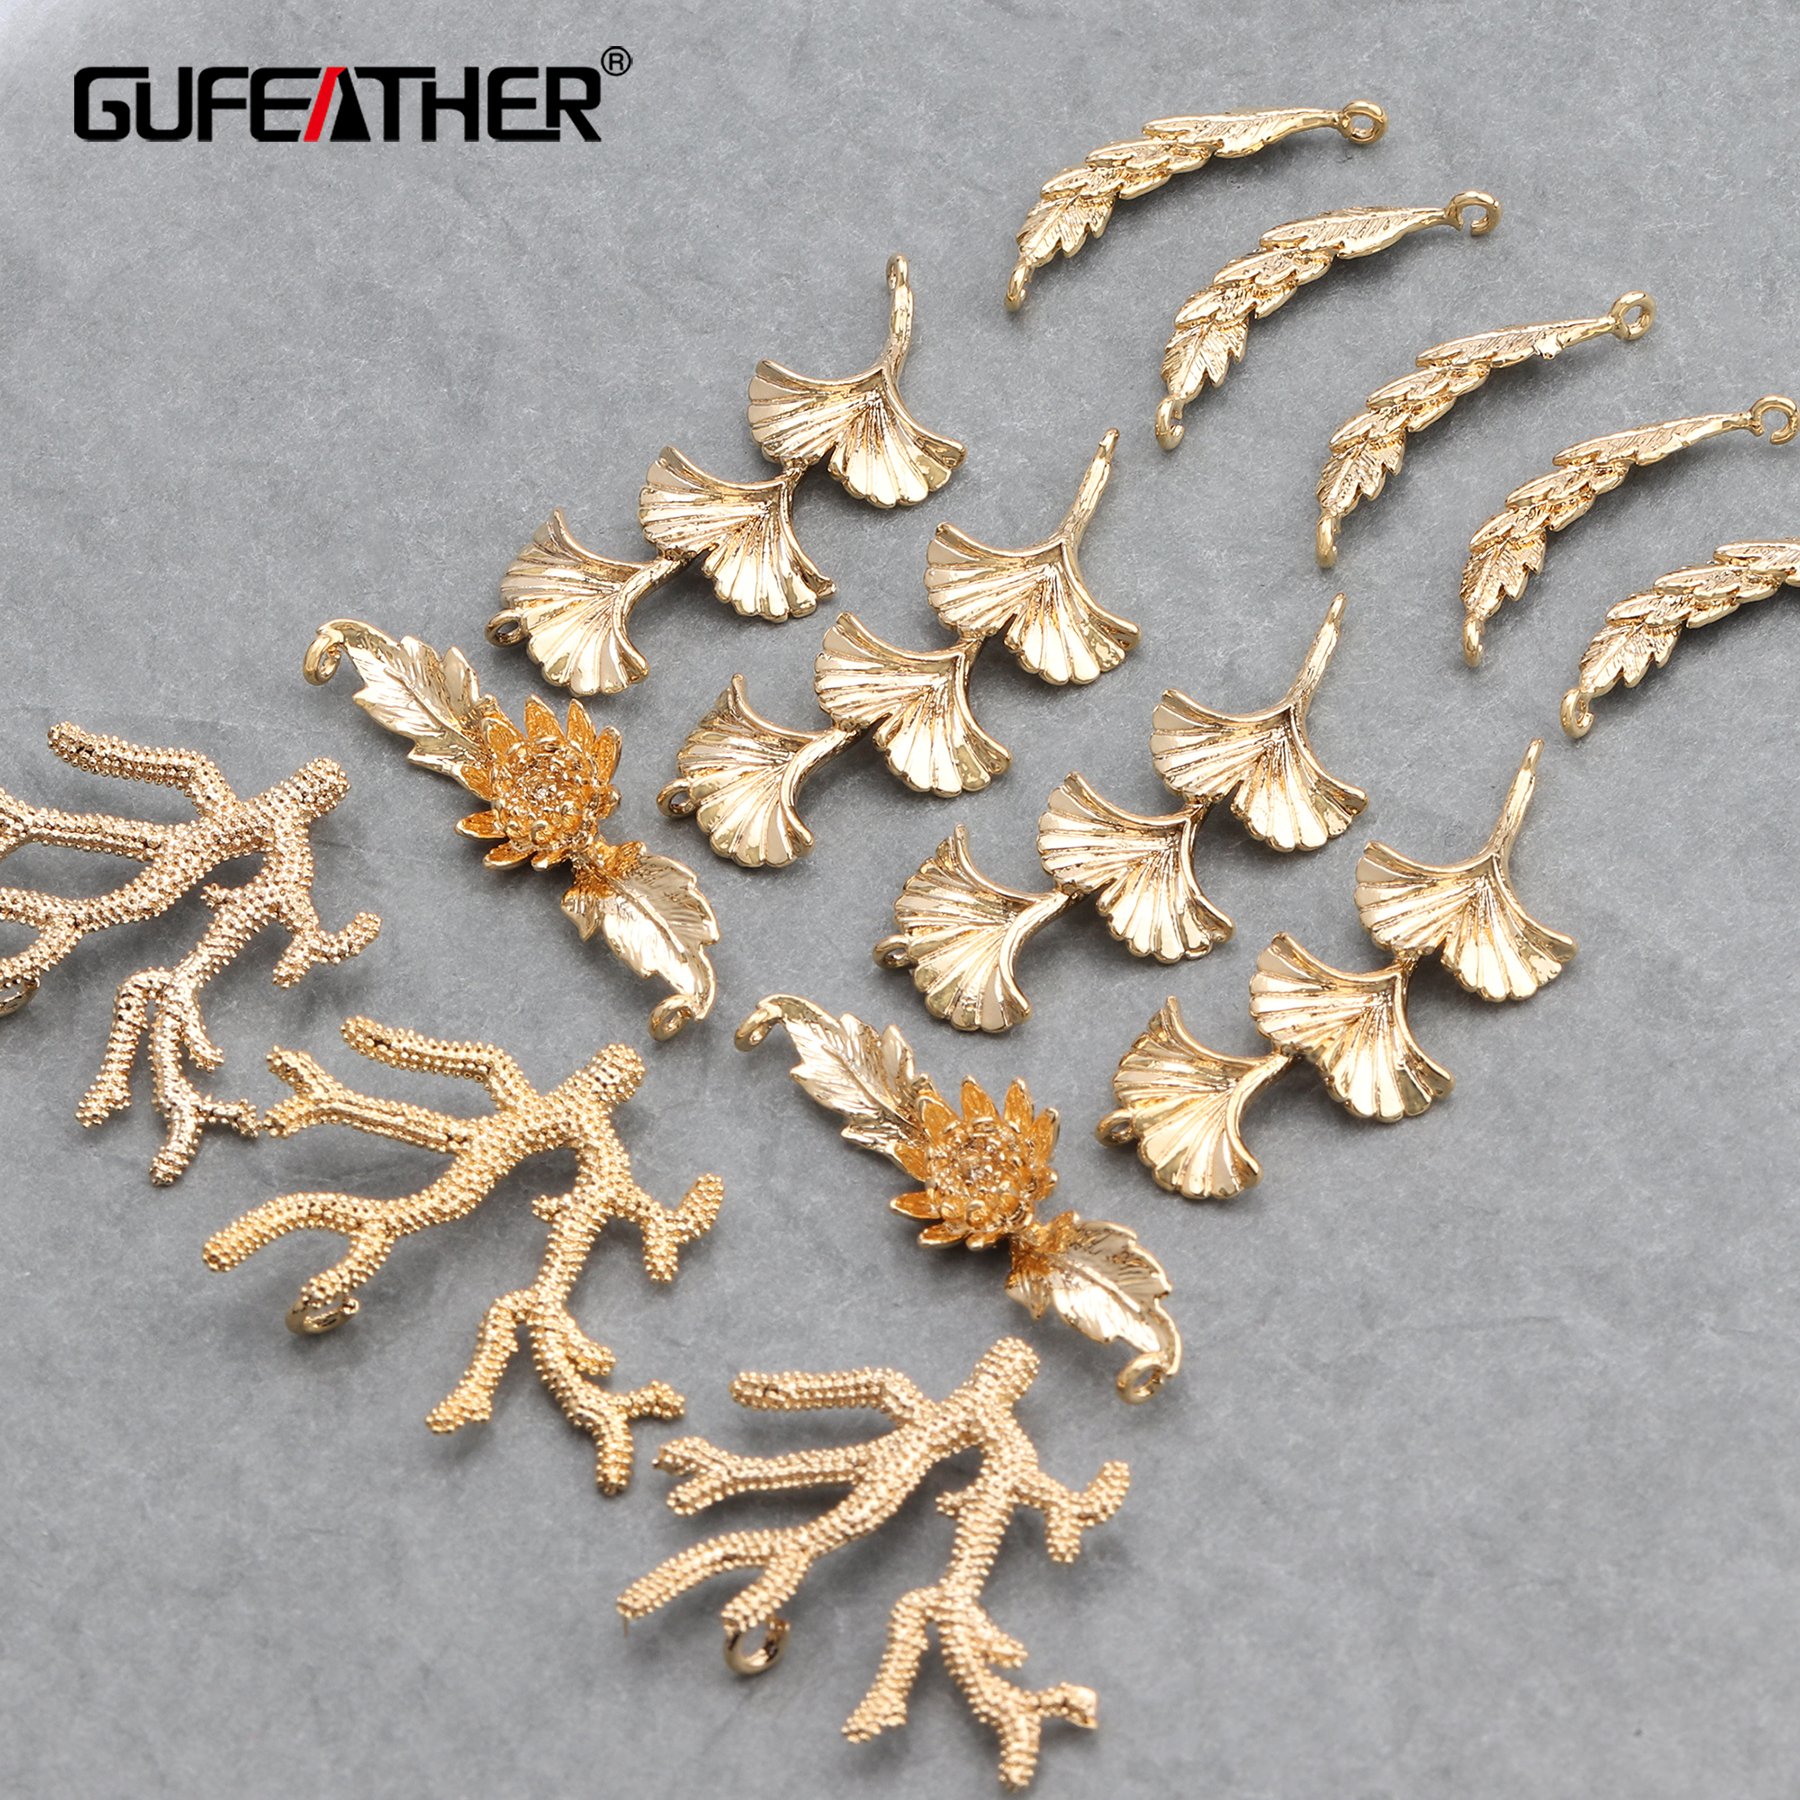 GUFEATHER M647,jewelry Accessories,18k Gold Plated,hand Made,charms,jewelry Findings,diy Earrings,jewelry Making,10pcs/lot